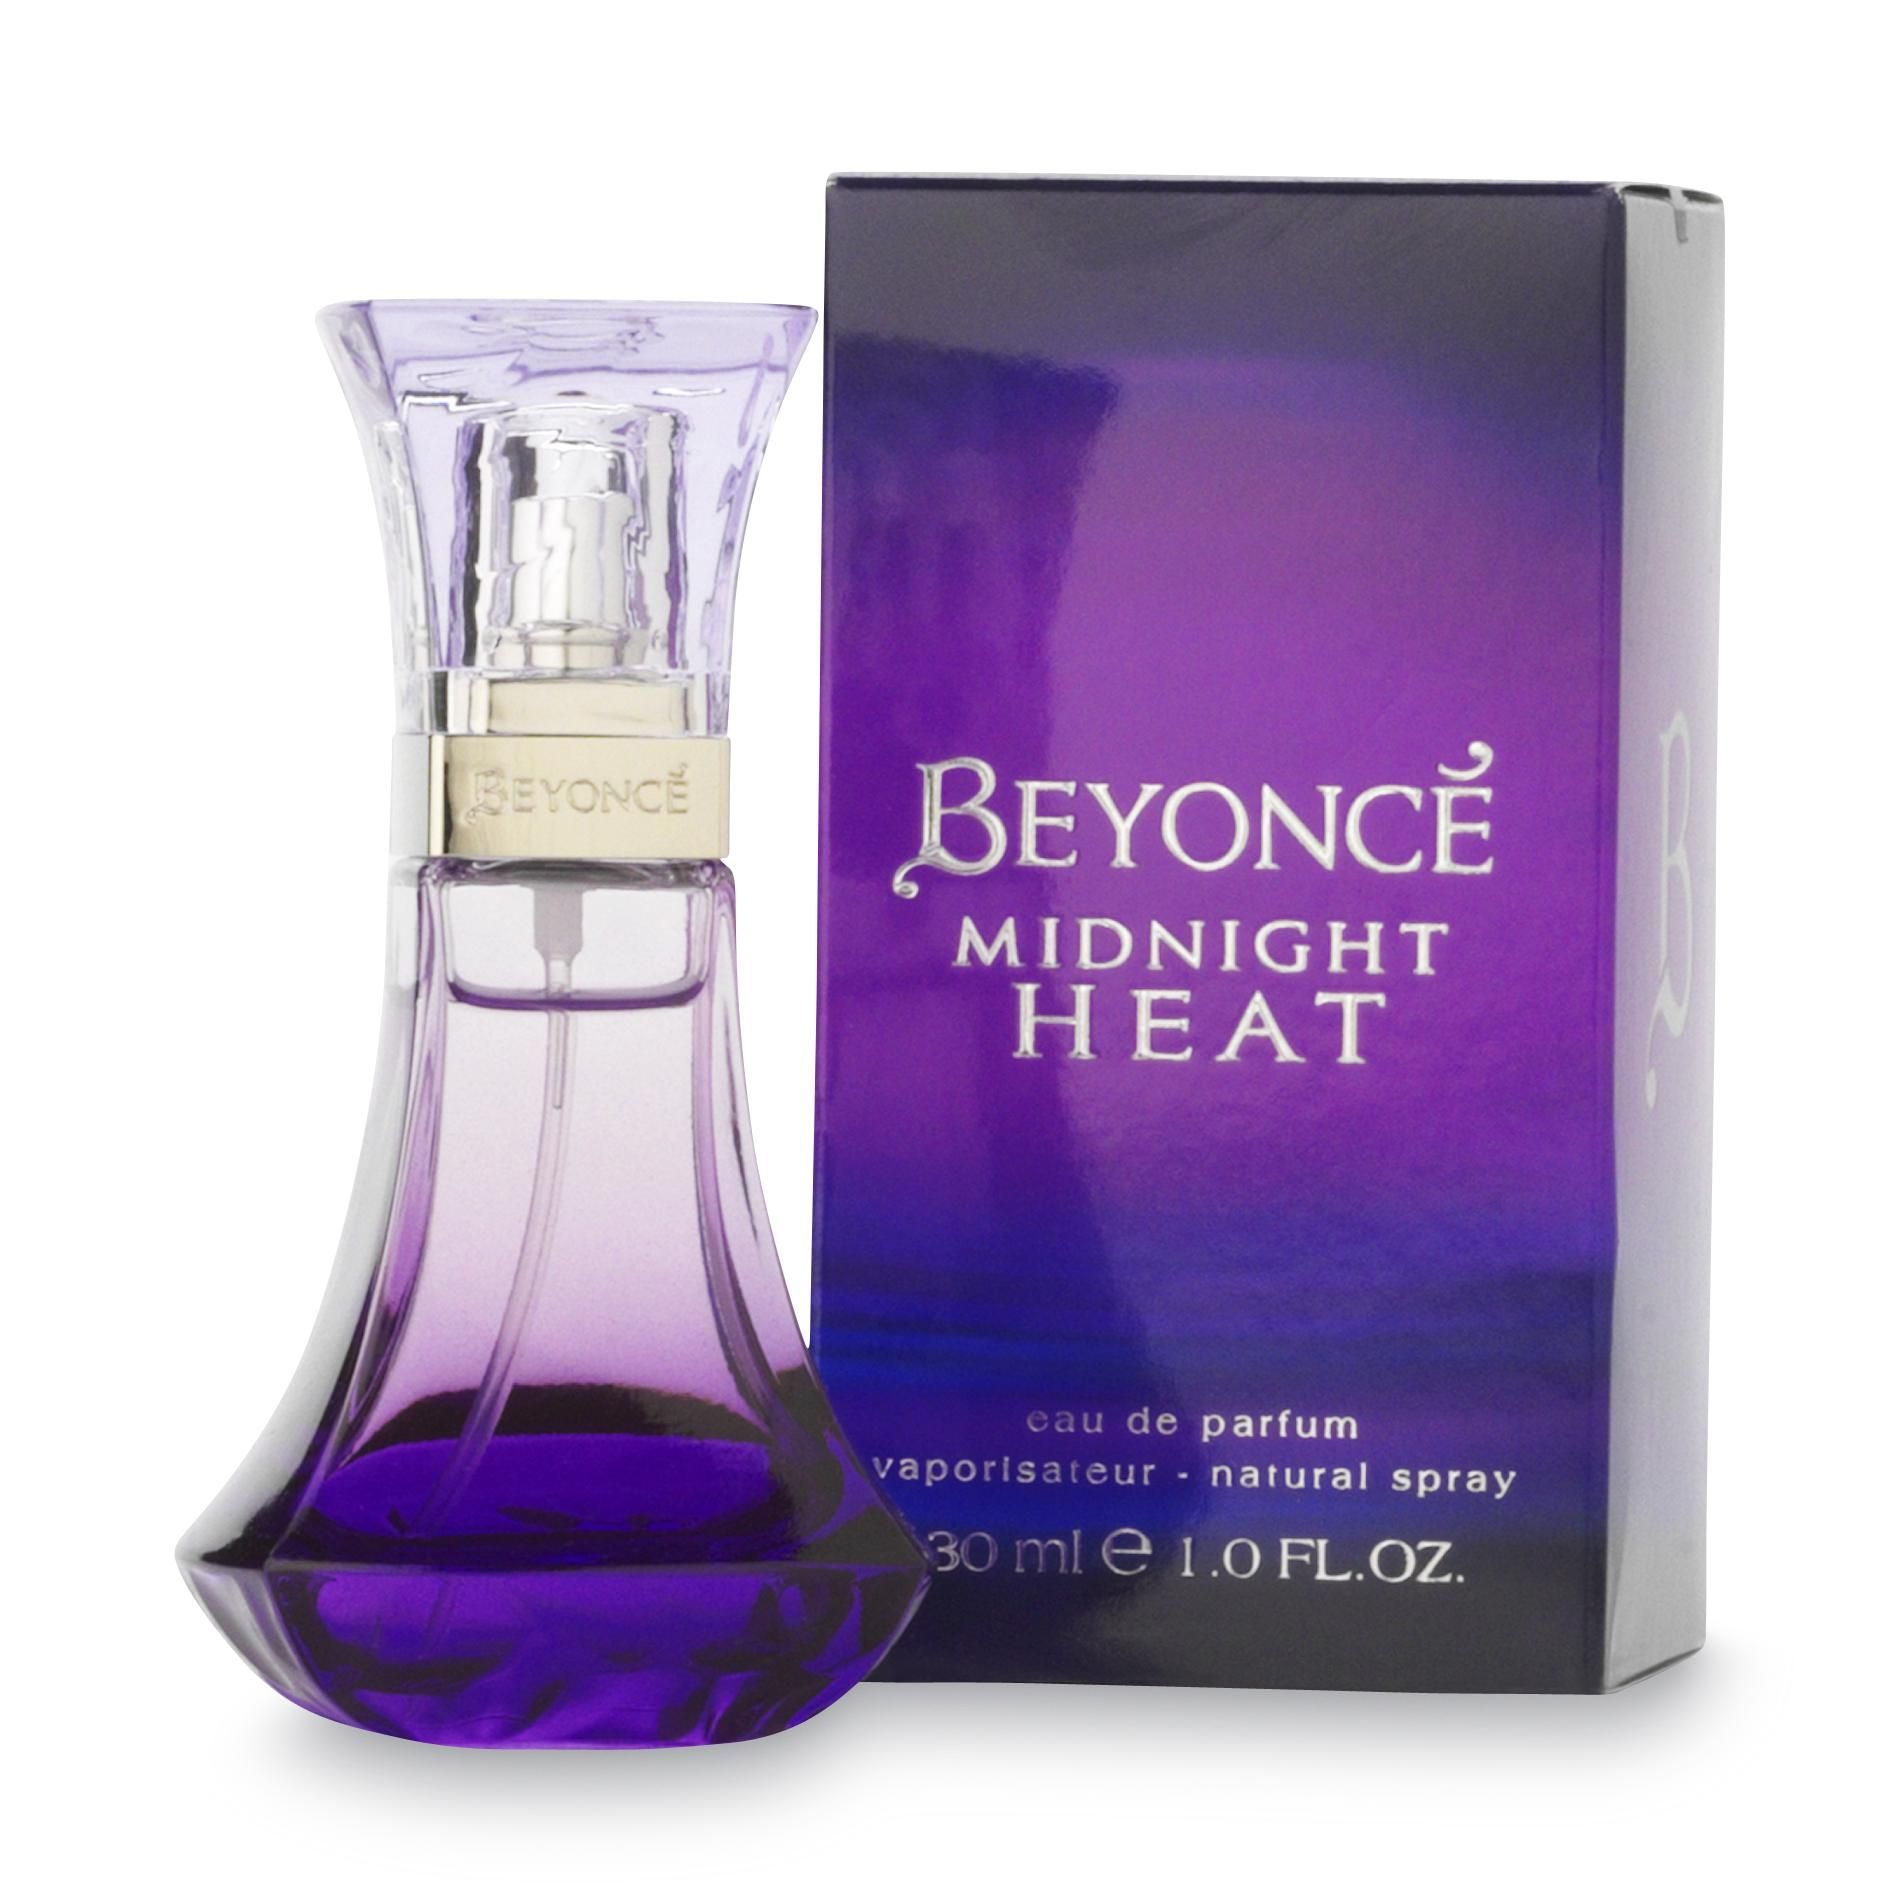 Beyonce Midnight Heat Eau de Parfum 30ml Spray